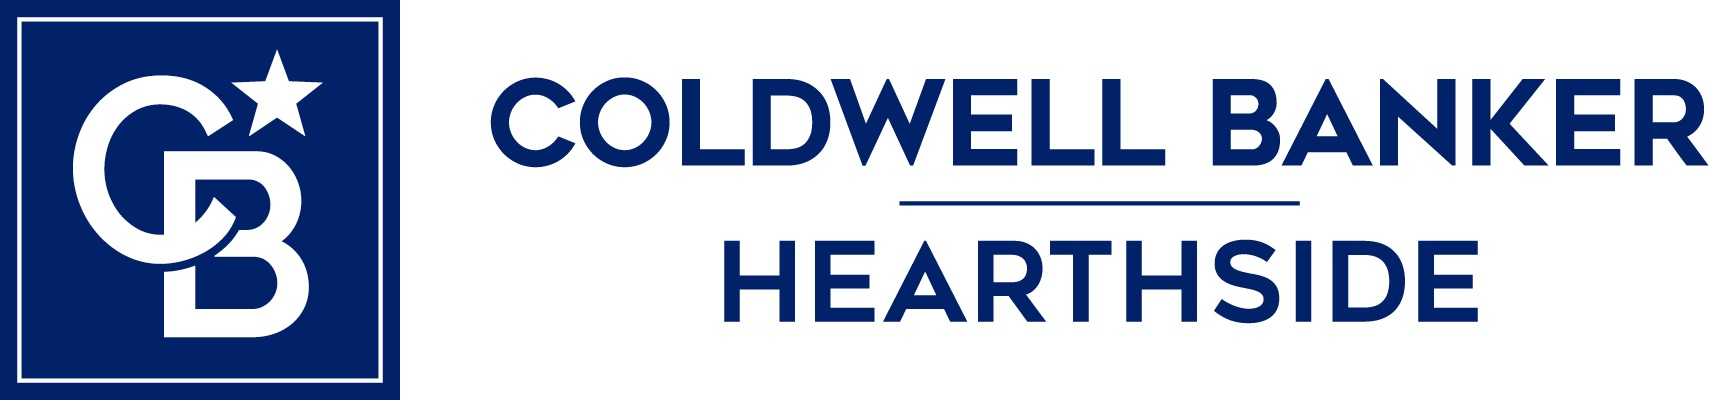 Anthony Michael - Coldwell Banker Hearthside Logo